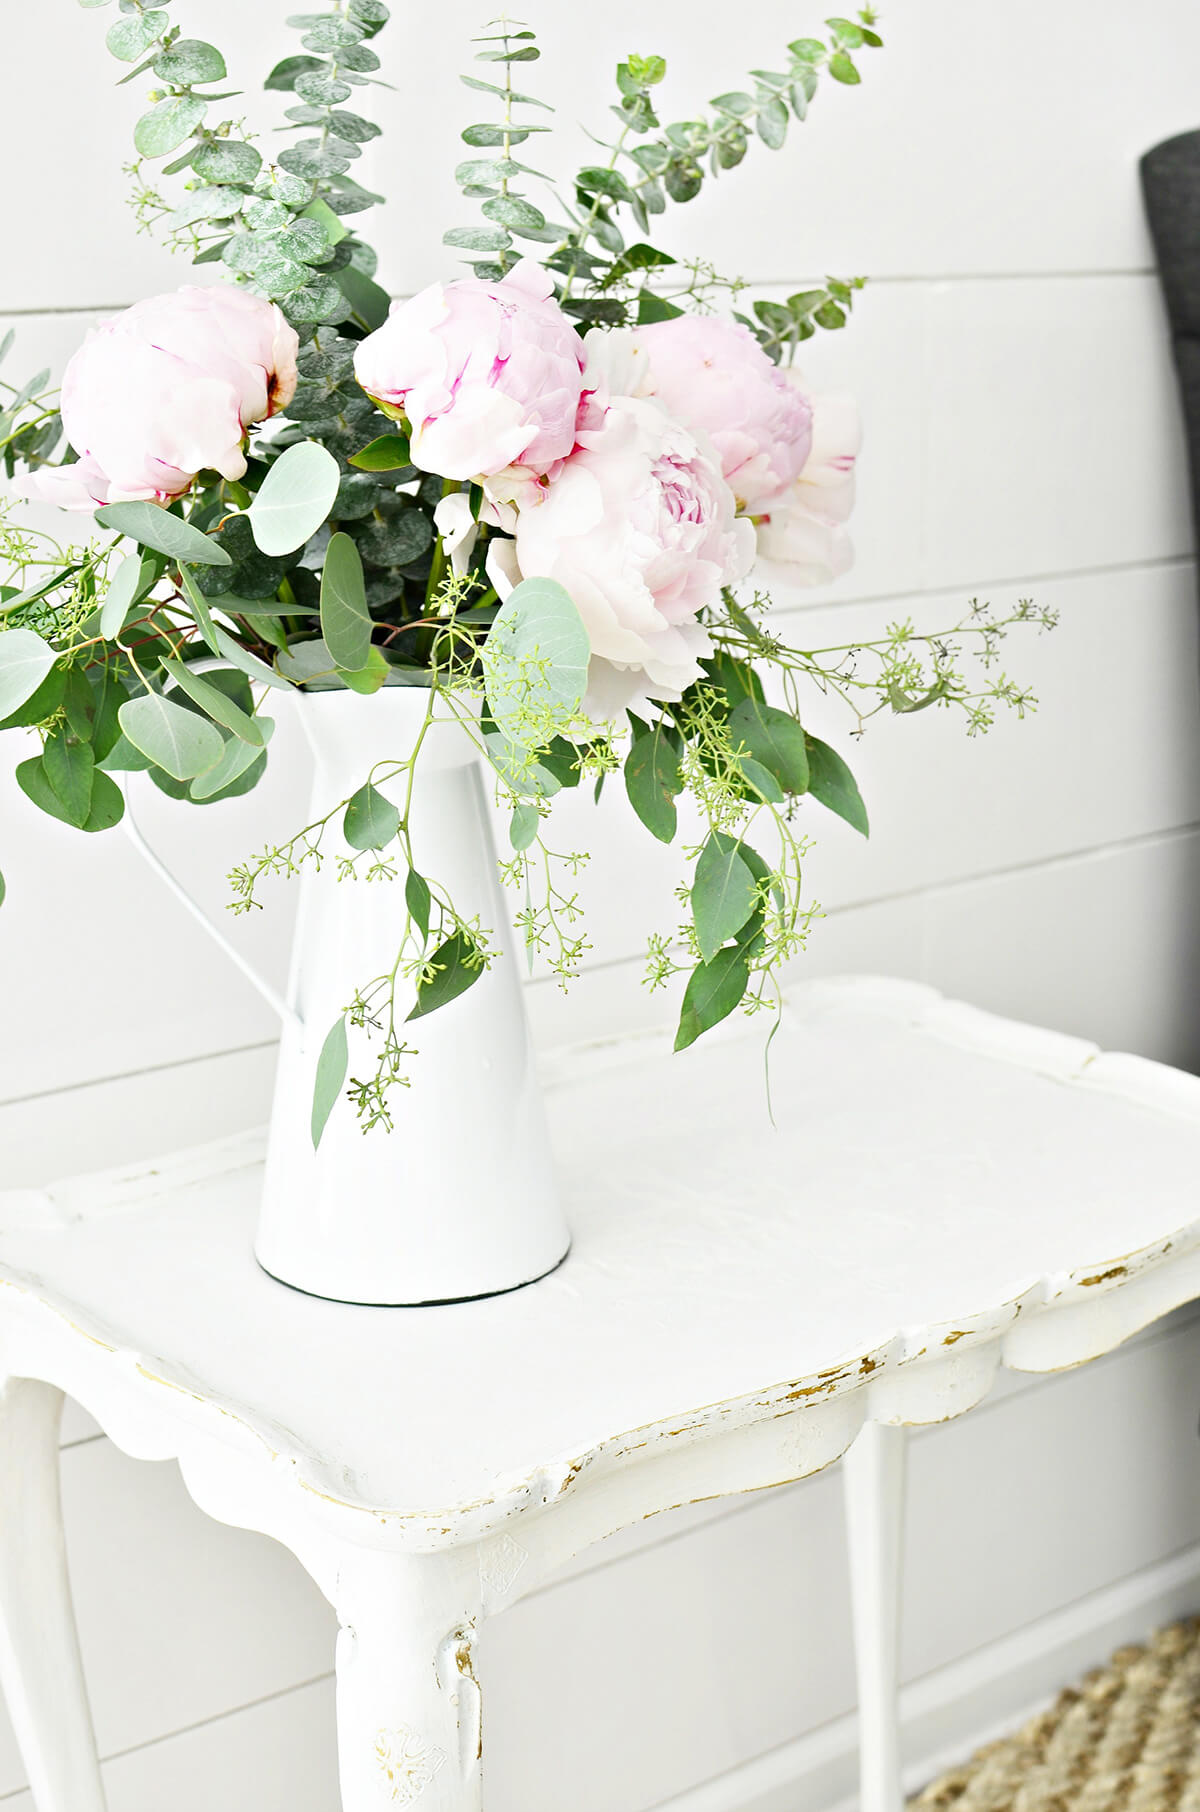 Elegant Vase with Pink Flowers